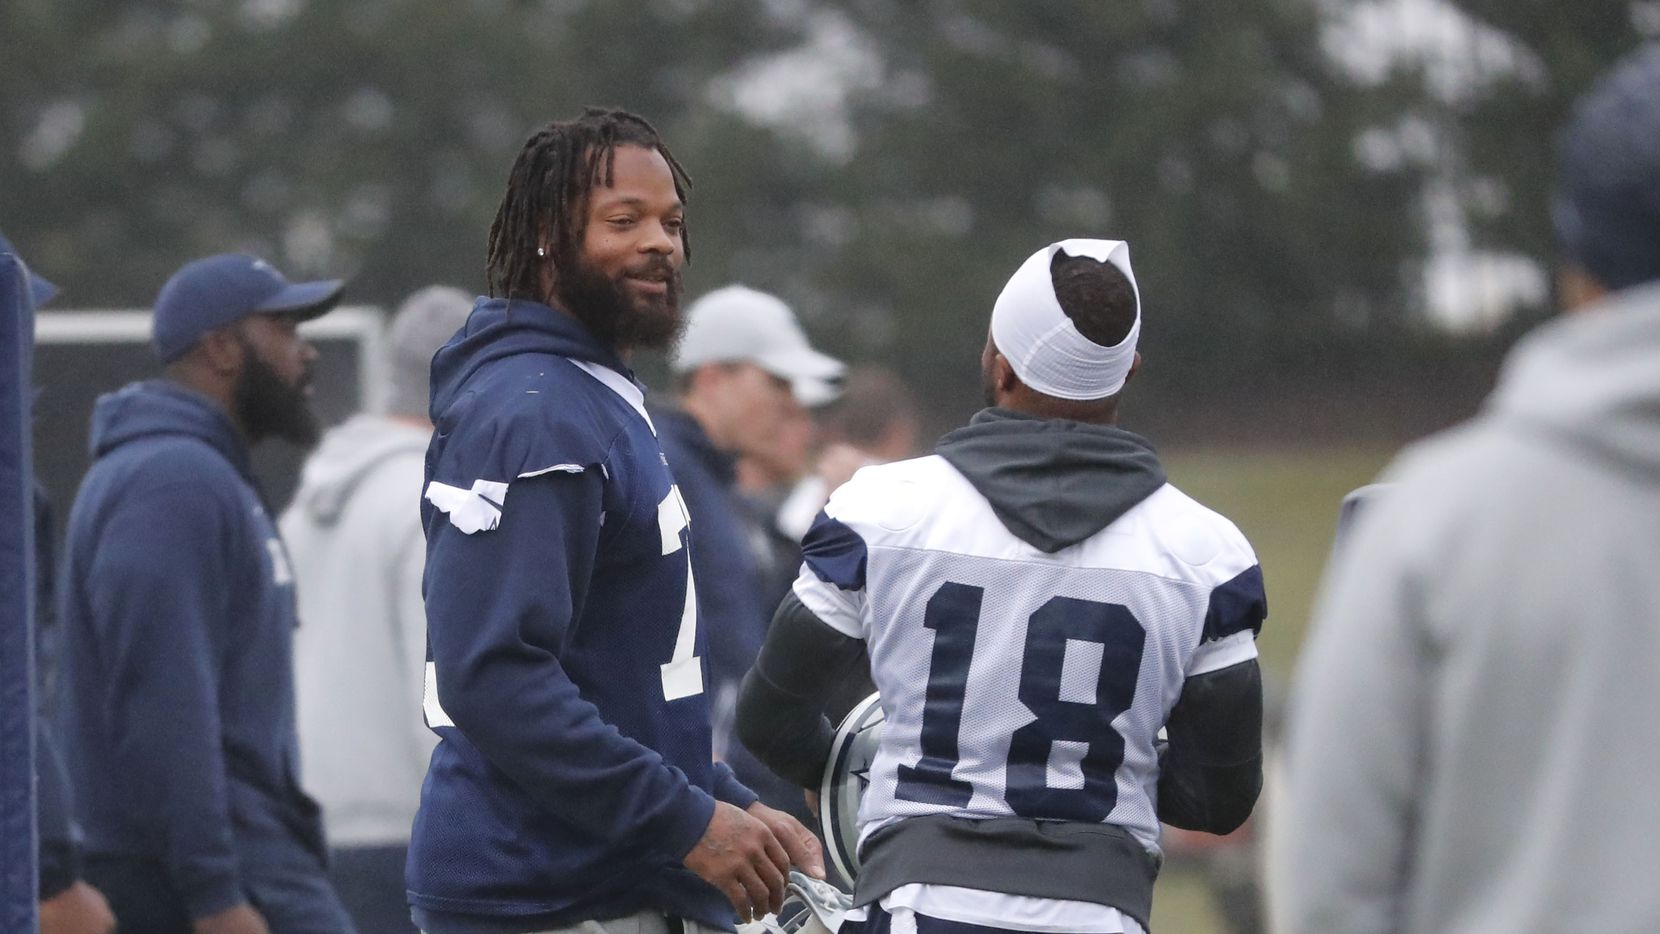 Dallas Cowboys defensive lineman Michael Bennett (79) talks with teammate wide receiver Randall Cobb (18) during an NFL football team practice in Frisco on Oct. 29, 2019. The Cowboys acquired Bennett from the New England Patriots for a conditional late-round draft pick in 2021.